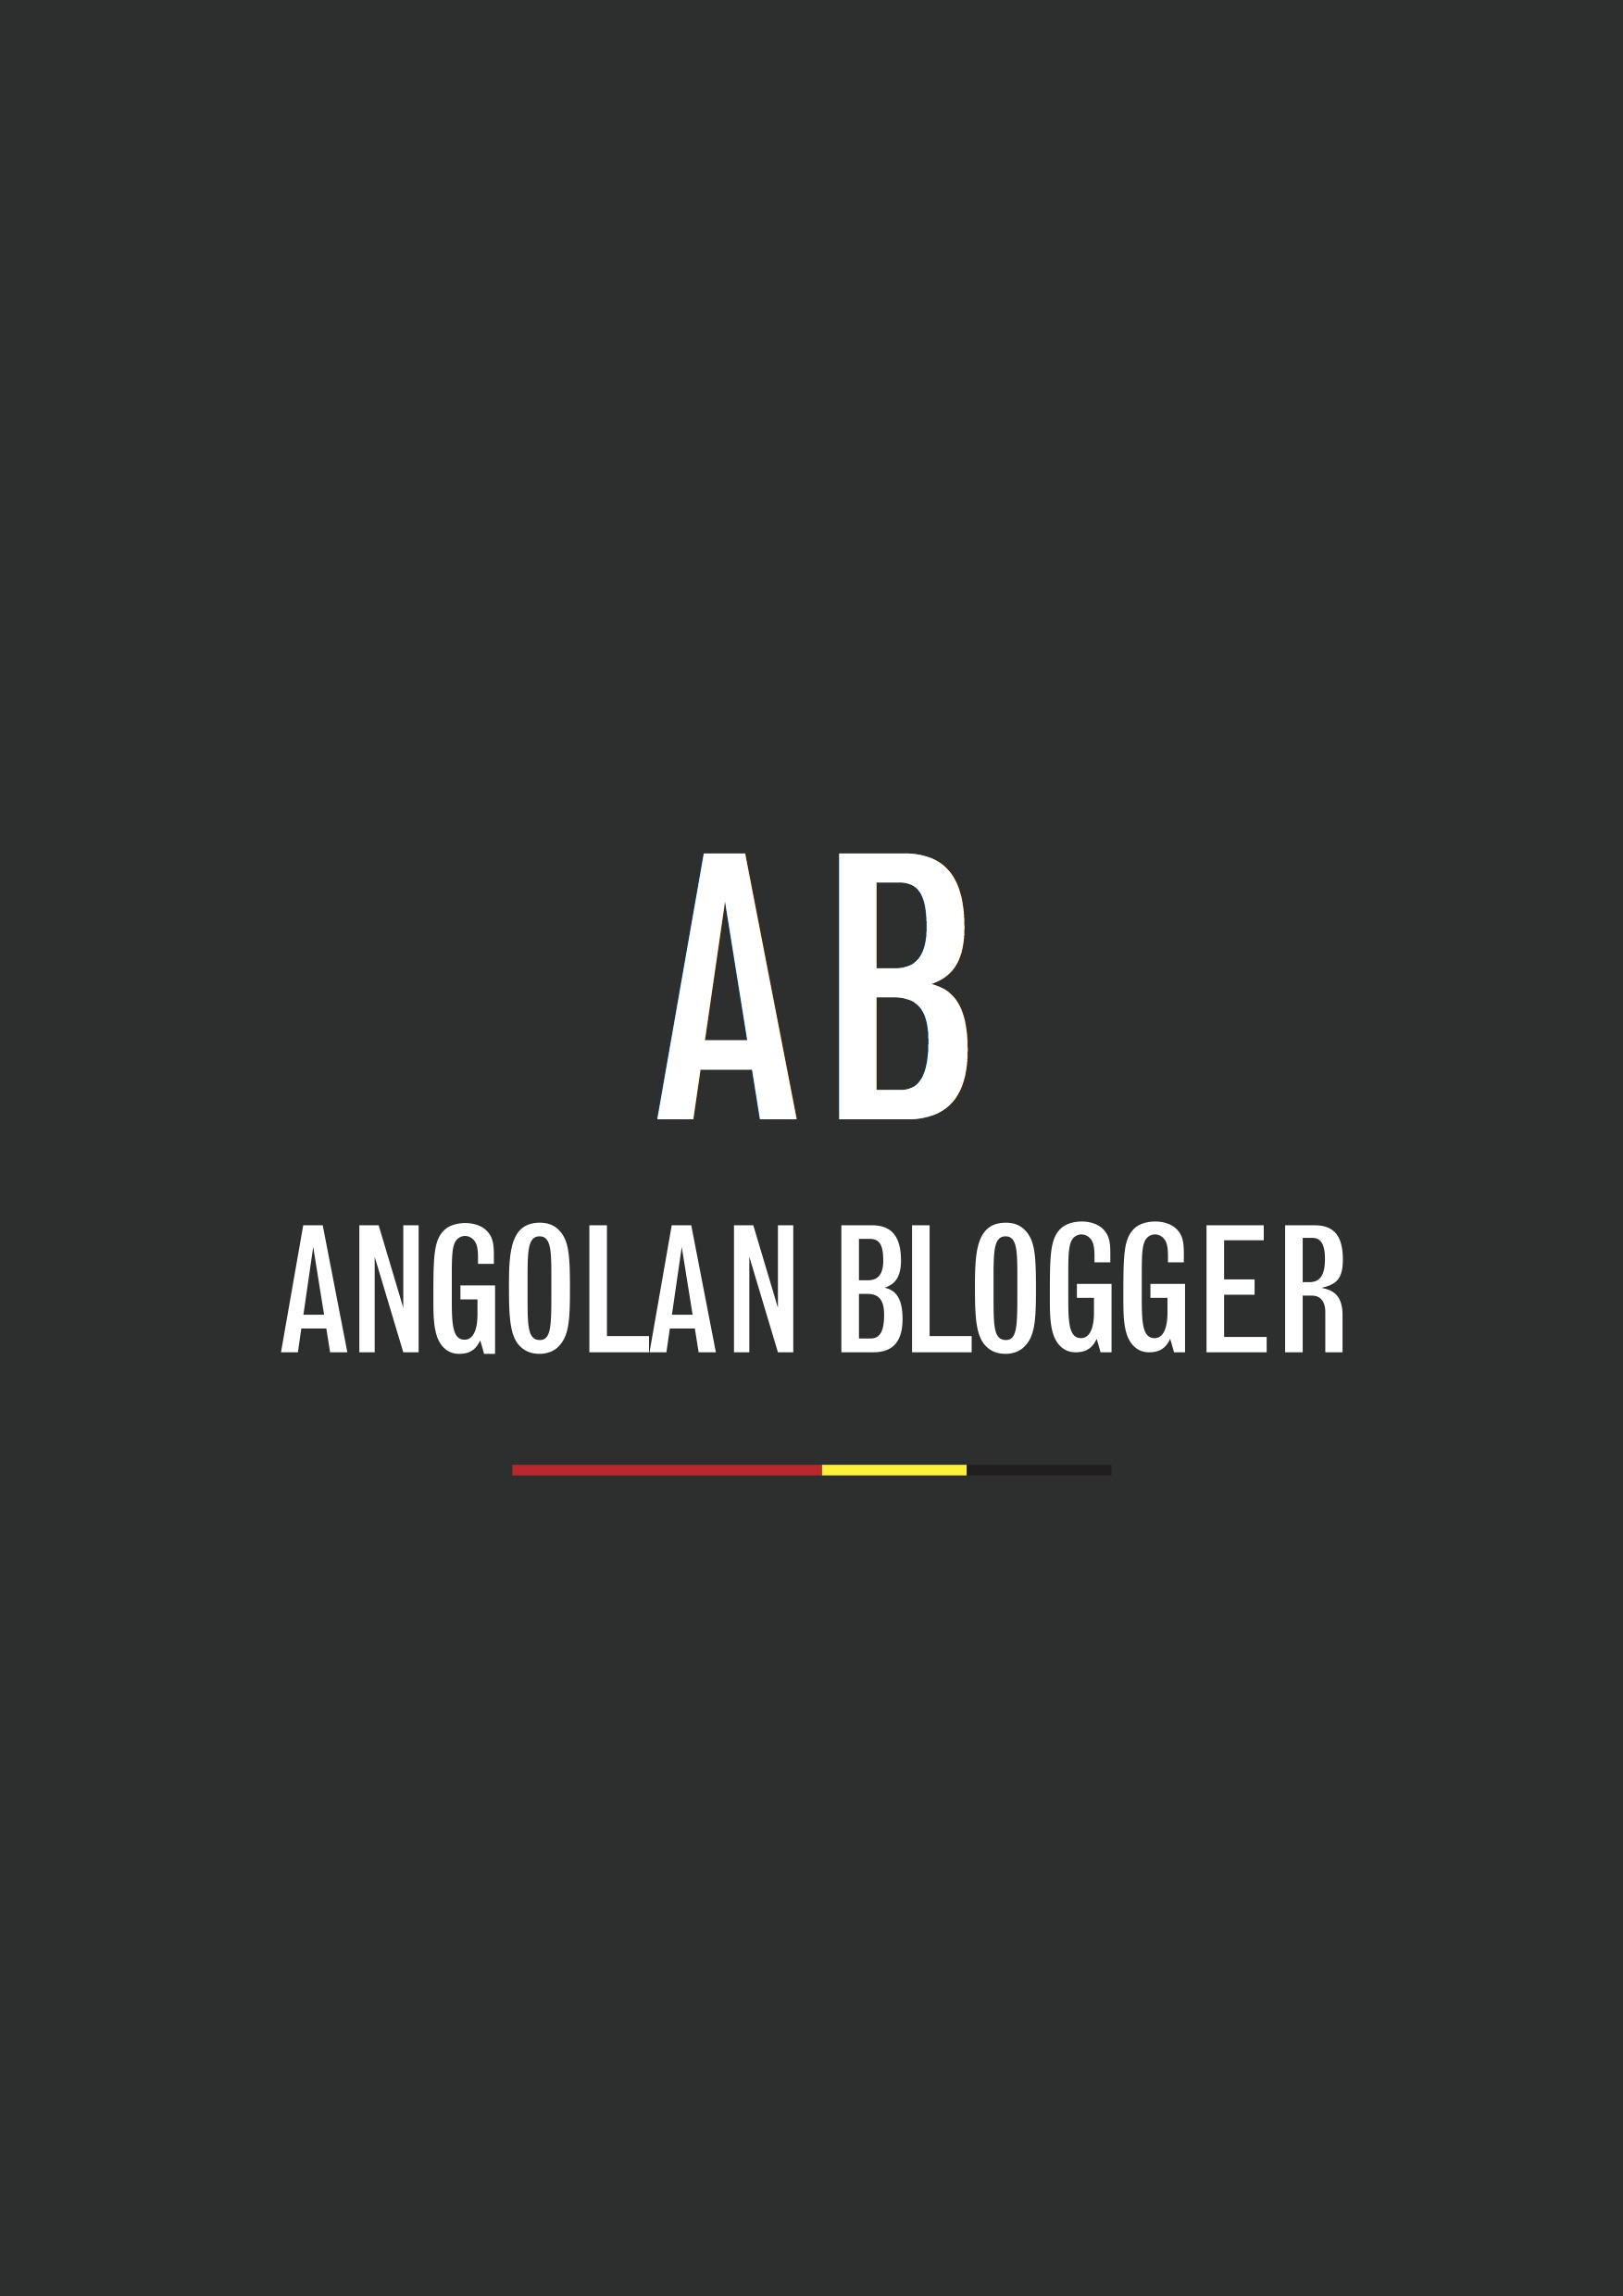 ANGOLAN BLOGGER NEW PROJECT – PRESS